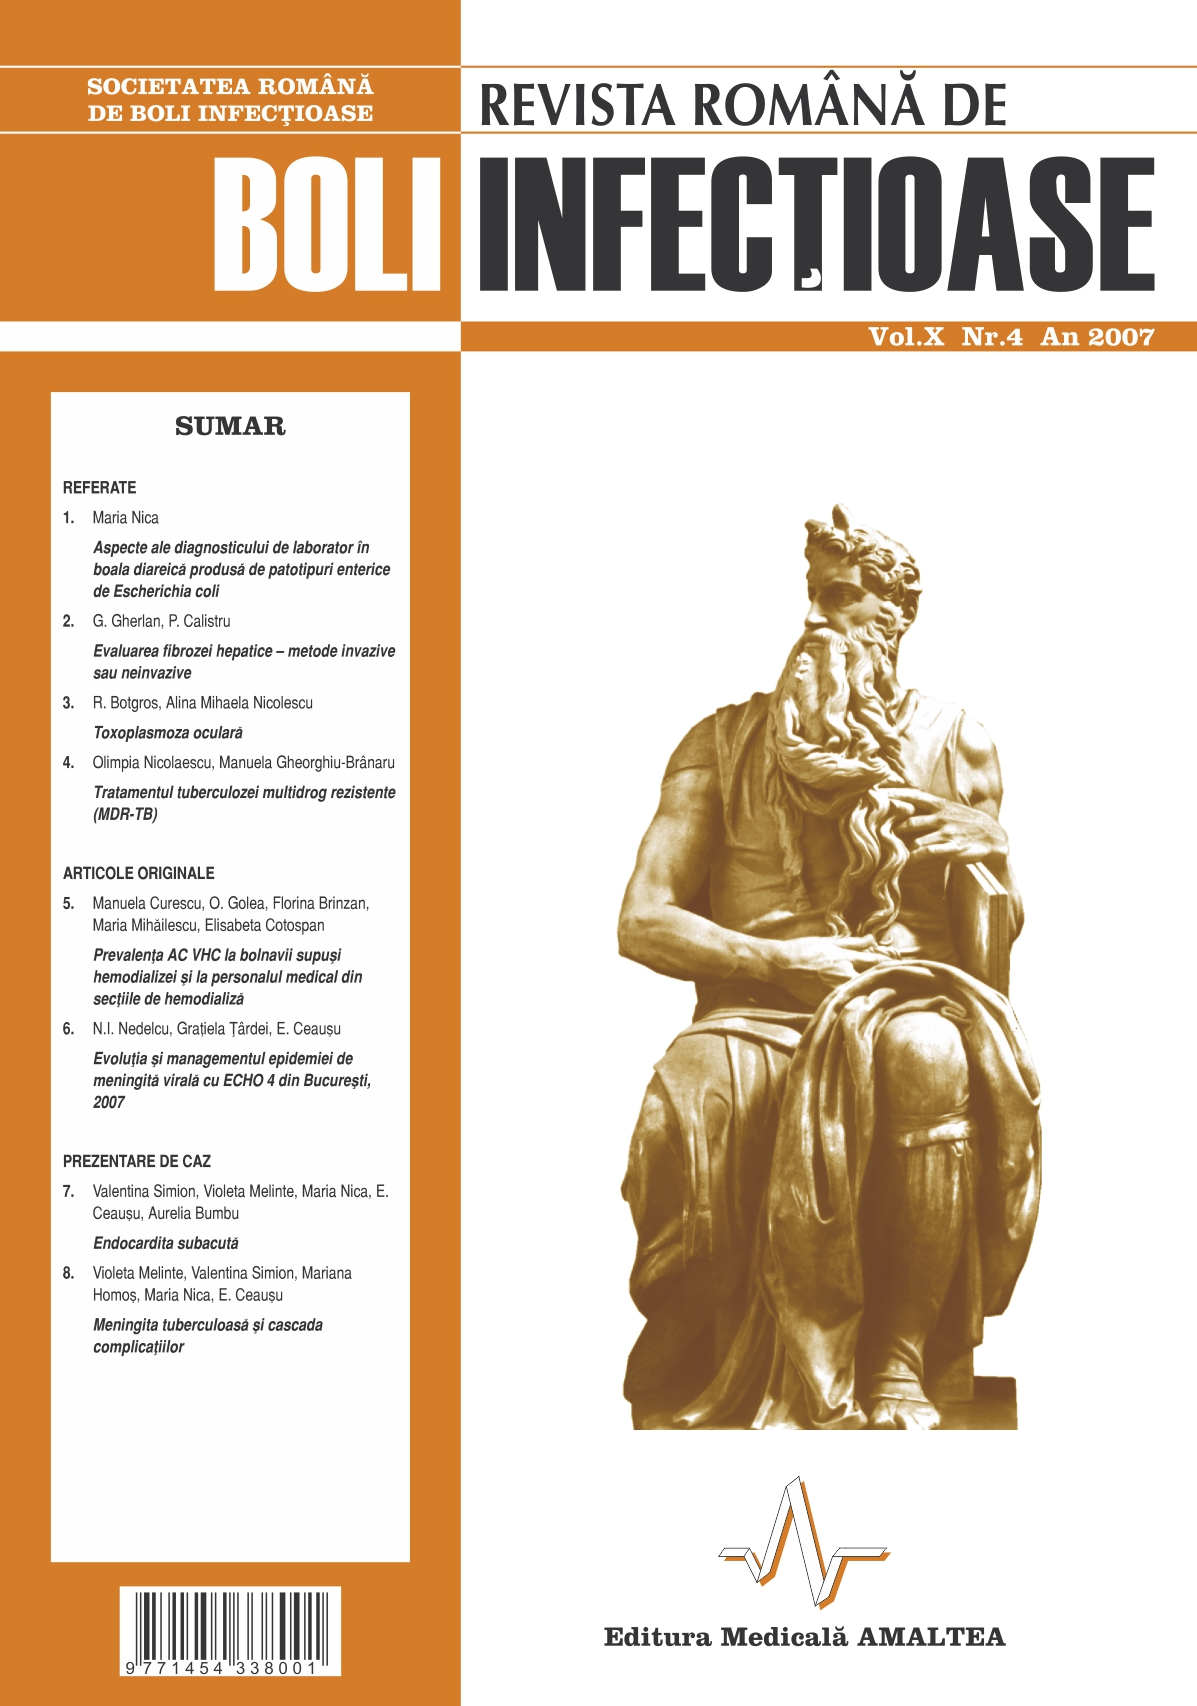 Revista Romana de Boli Infectioase | Vol. X, No. 4, 2007